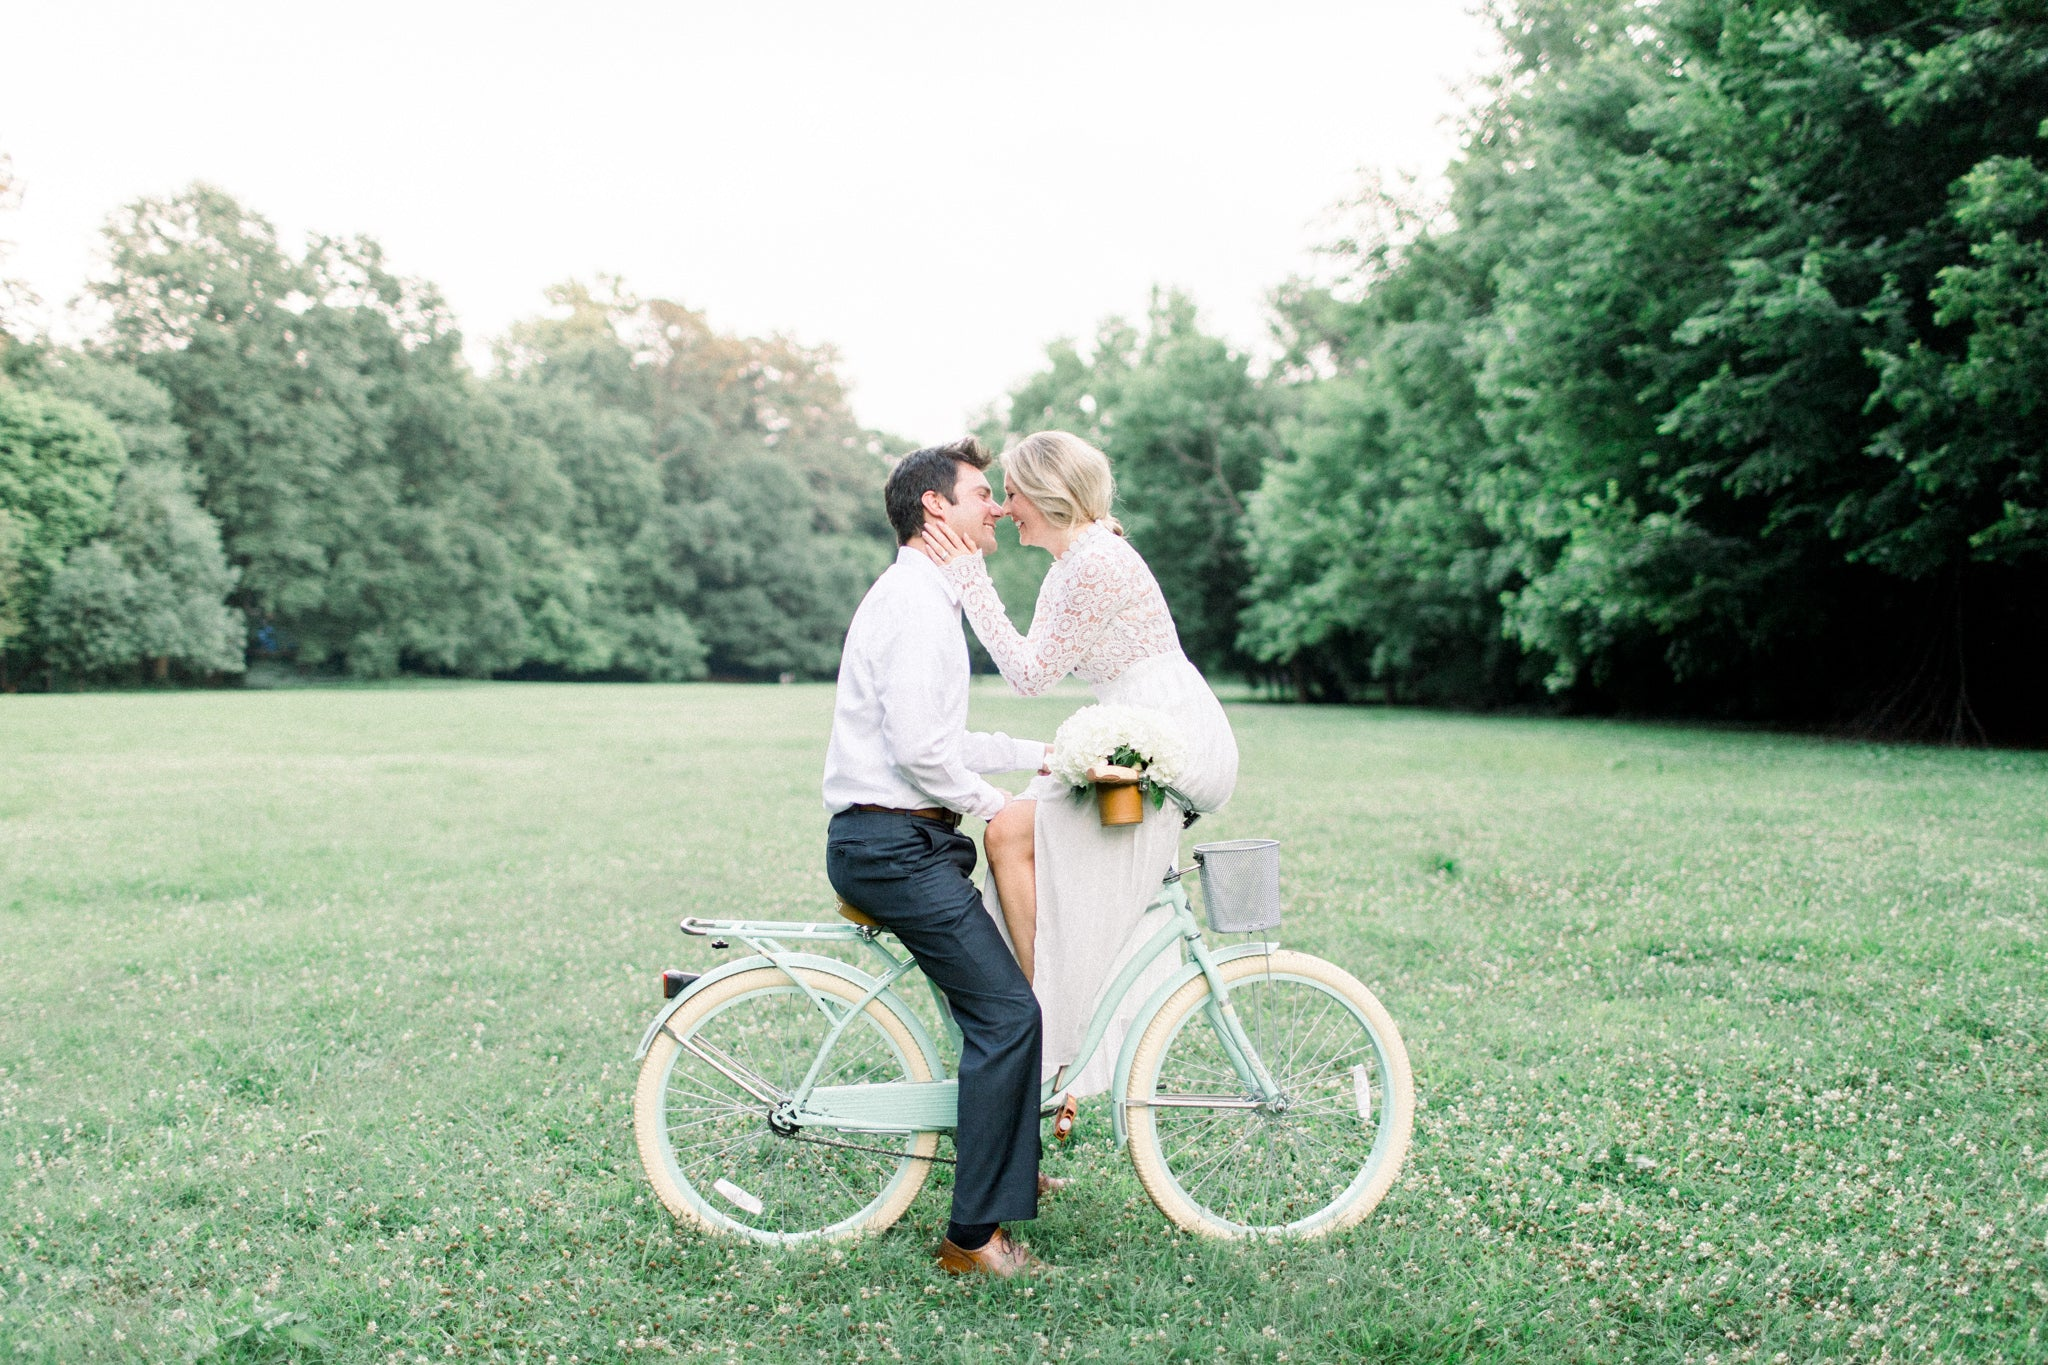 bride sitting on bike wearing little white dress with her fiancé taking engagement photographs